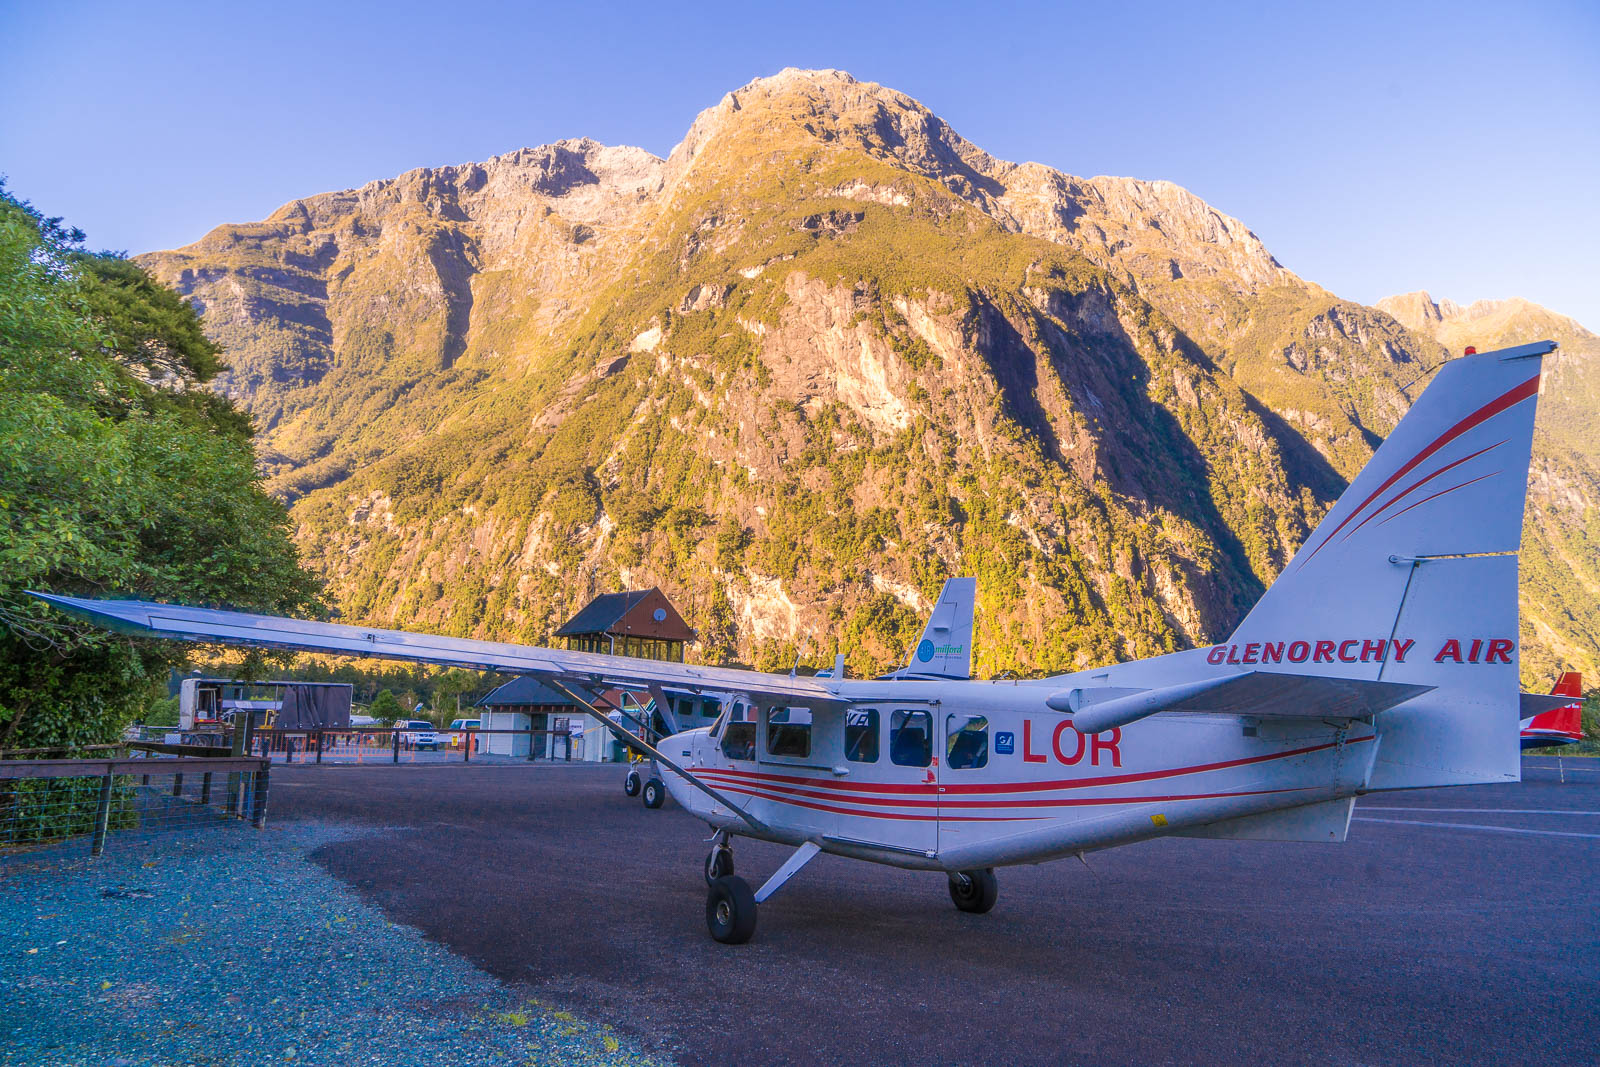 Glenorchy Air Milford Airport